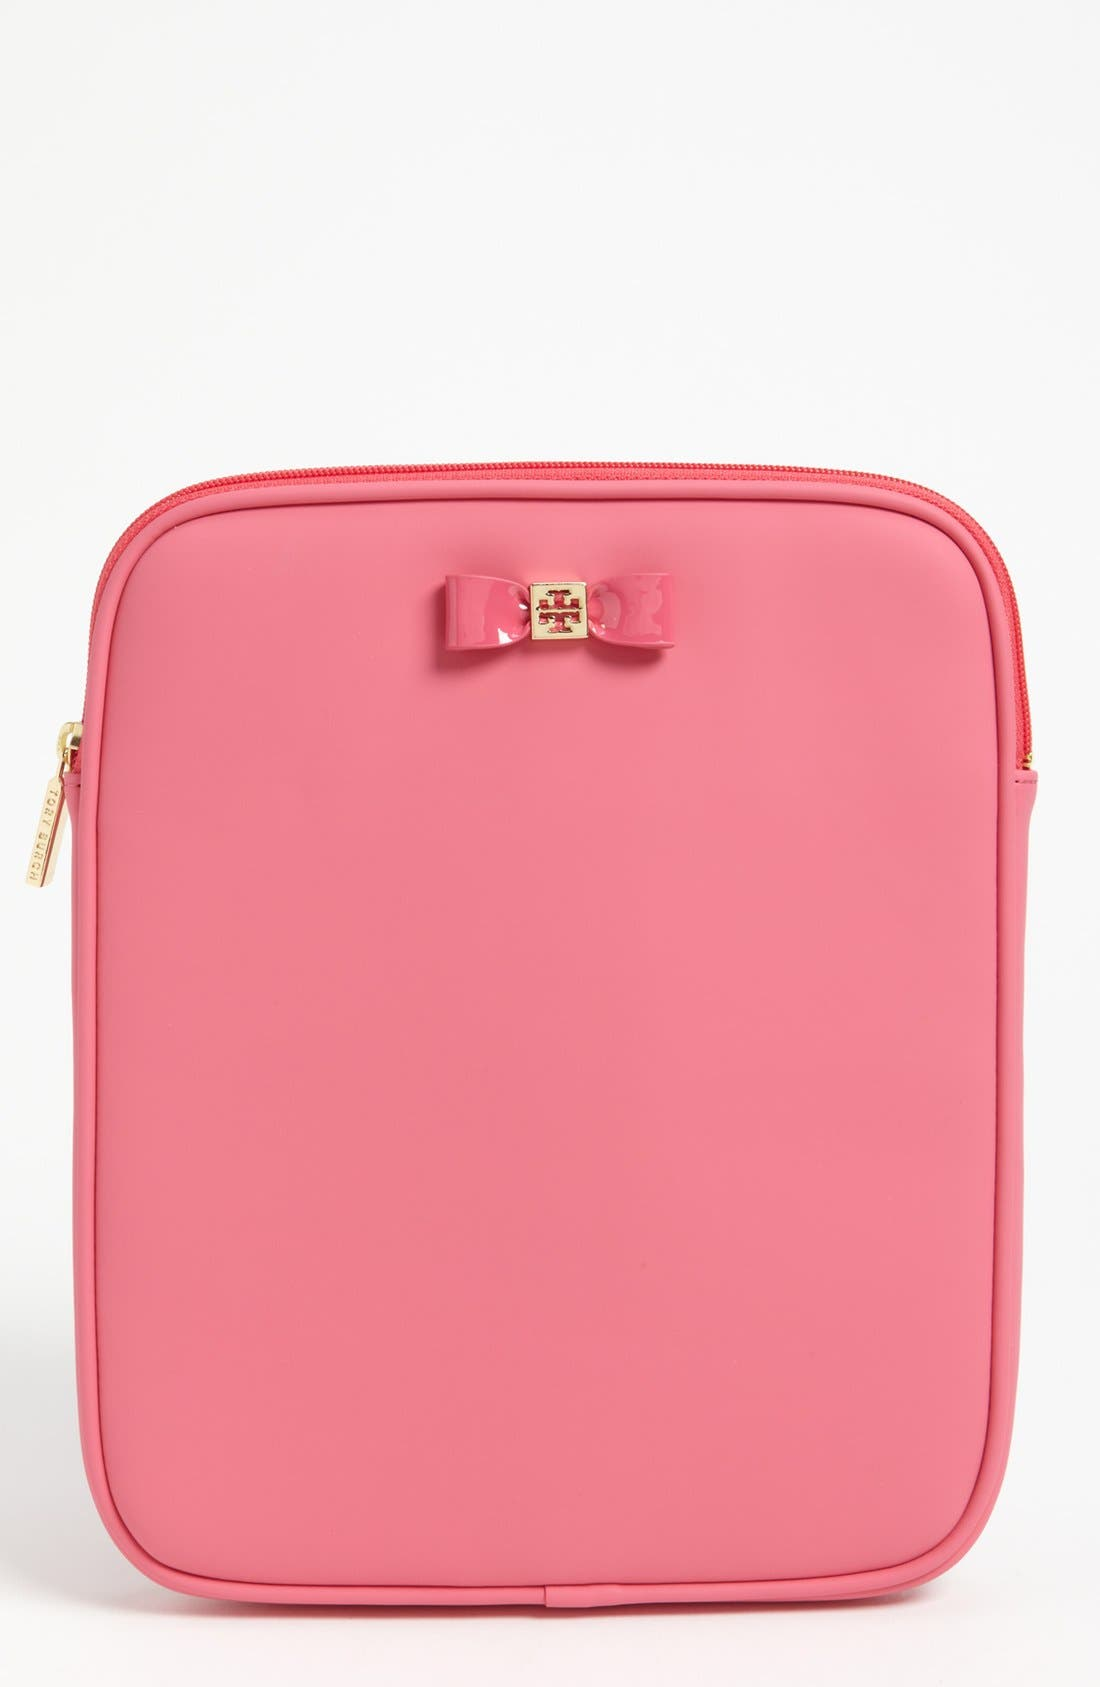 Alternate Image 1 Selected - Tory Burch 'Bow' Tablet Sleeve